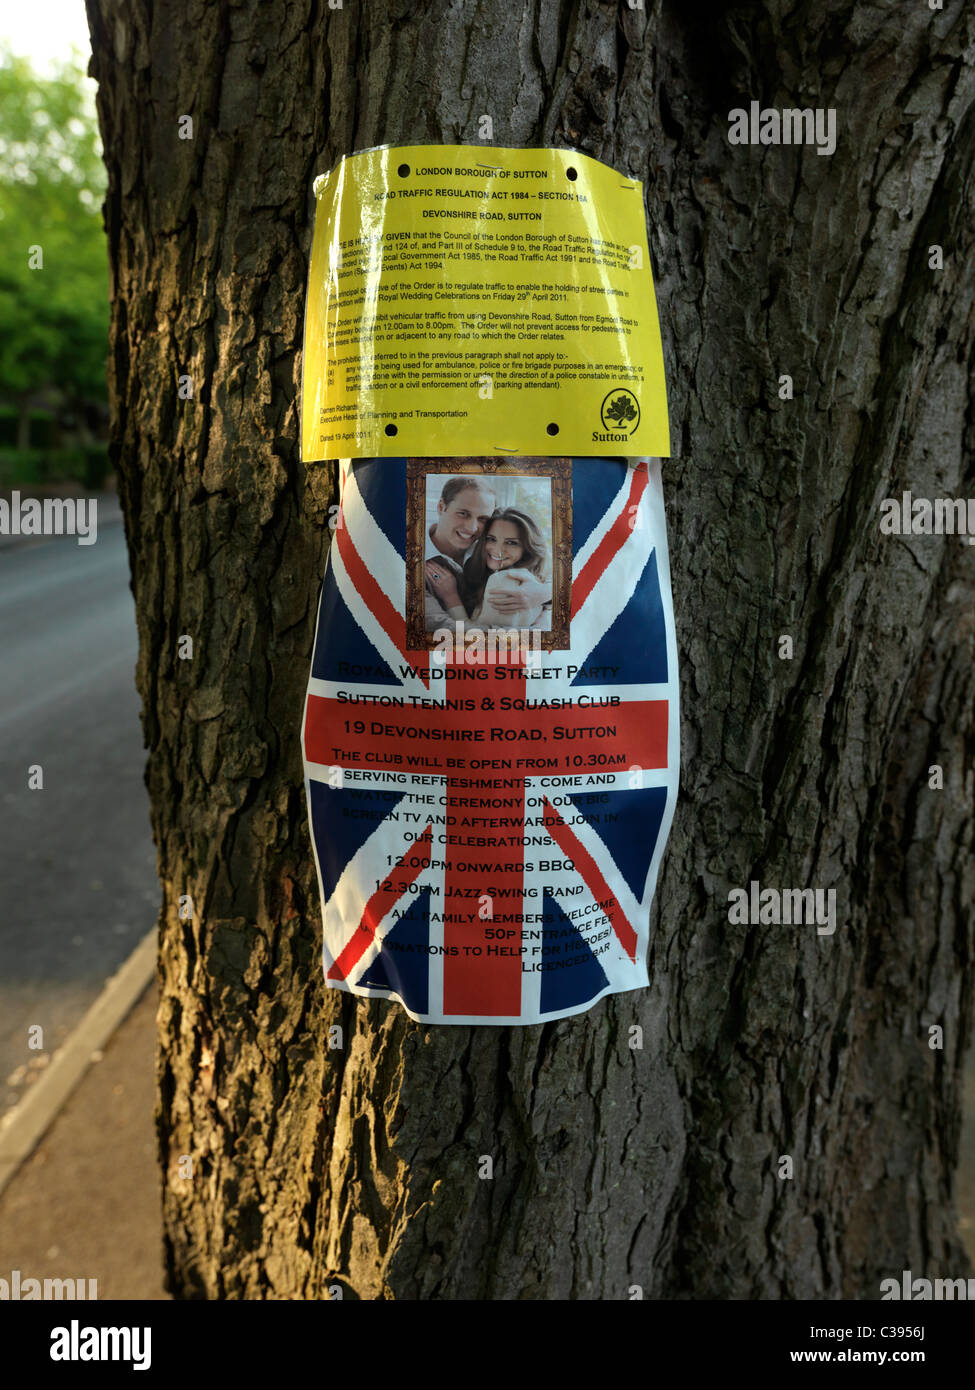 Notice of Intended Royal Wedding Street Party and the Council Permit - Stock Image